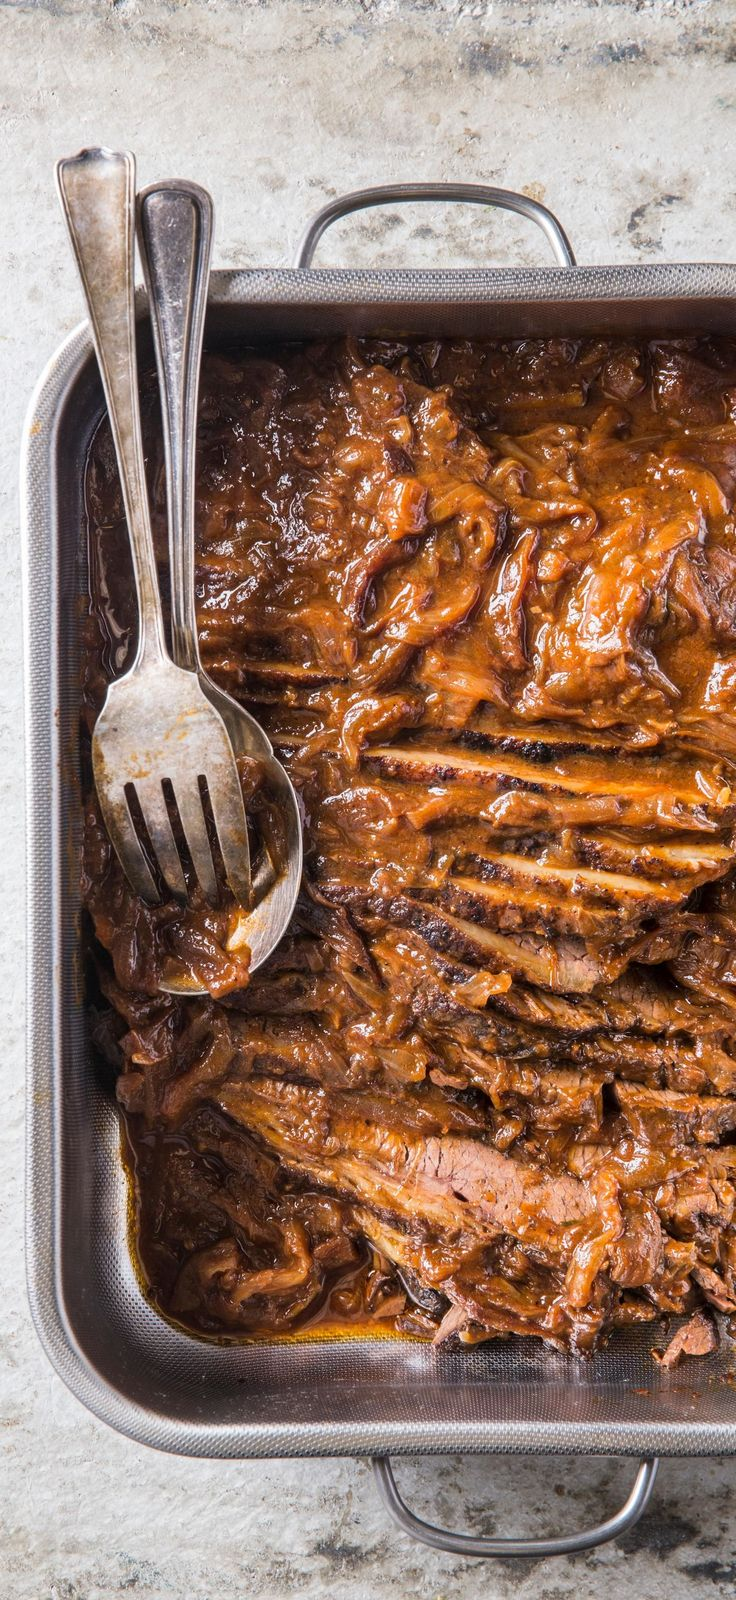 Make Ahead Onion-Braised Beef Brisket. Prepping this beef brisket ahead of time ensures a rich, flavorful meal, perfect for a midweek supper or Rosh Hashanah.